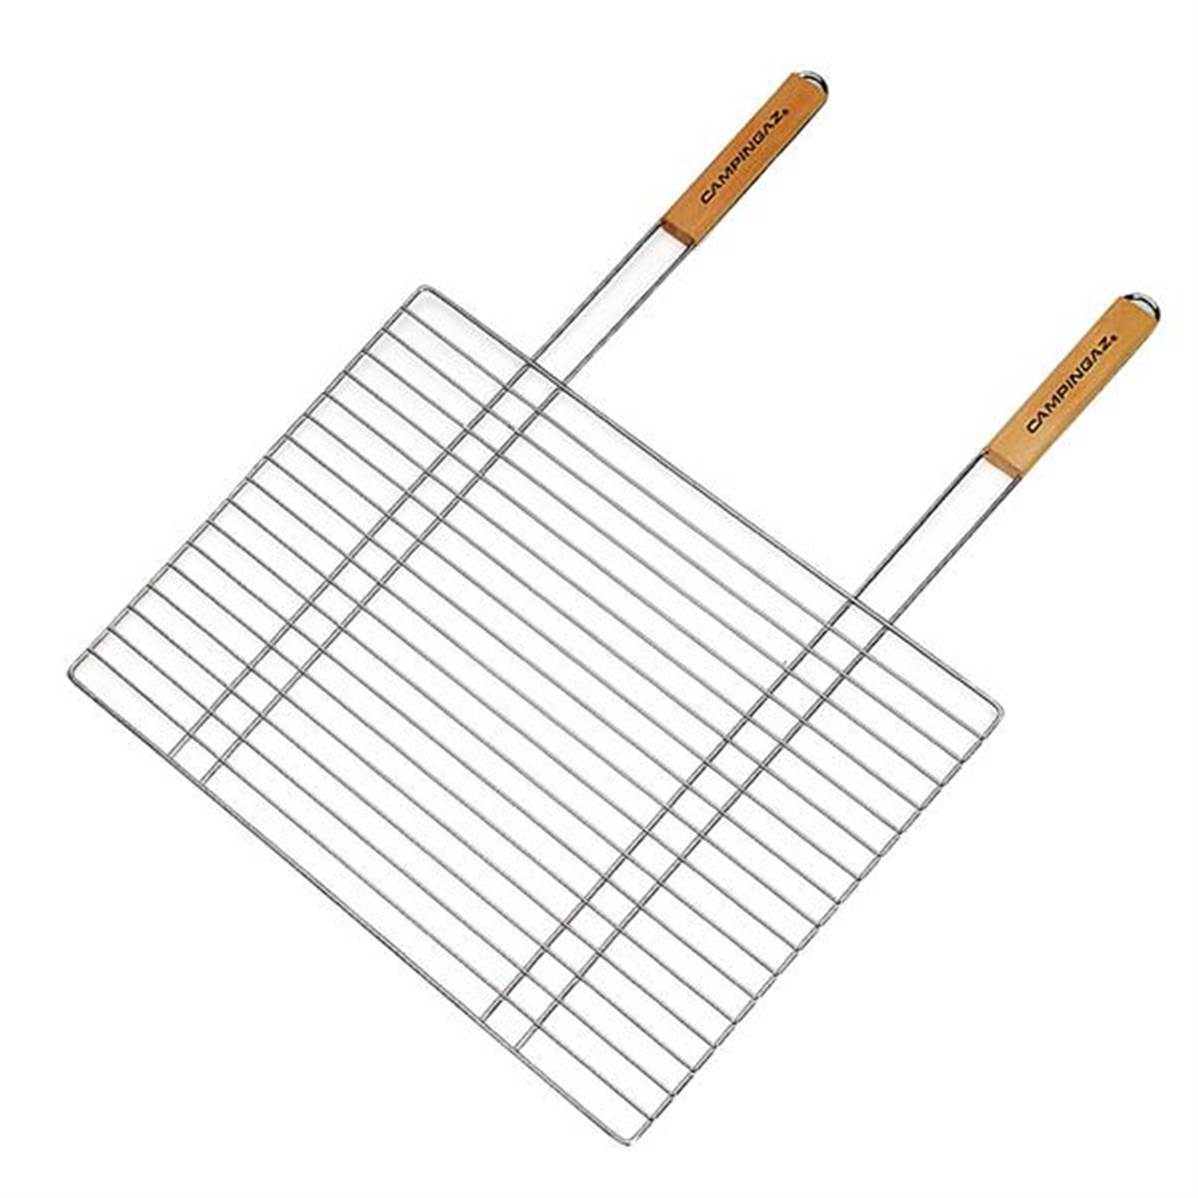 Campingaz 205704 grille pour barbecue rectangulaire simple